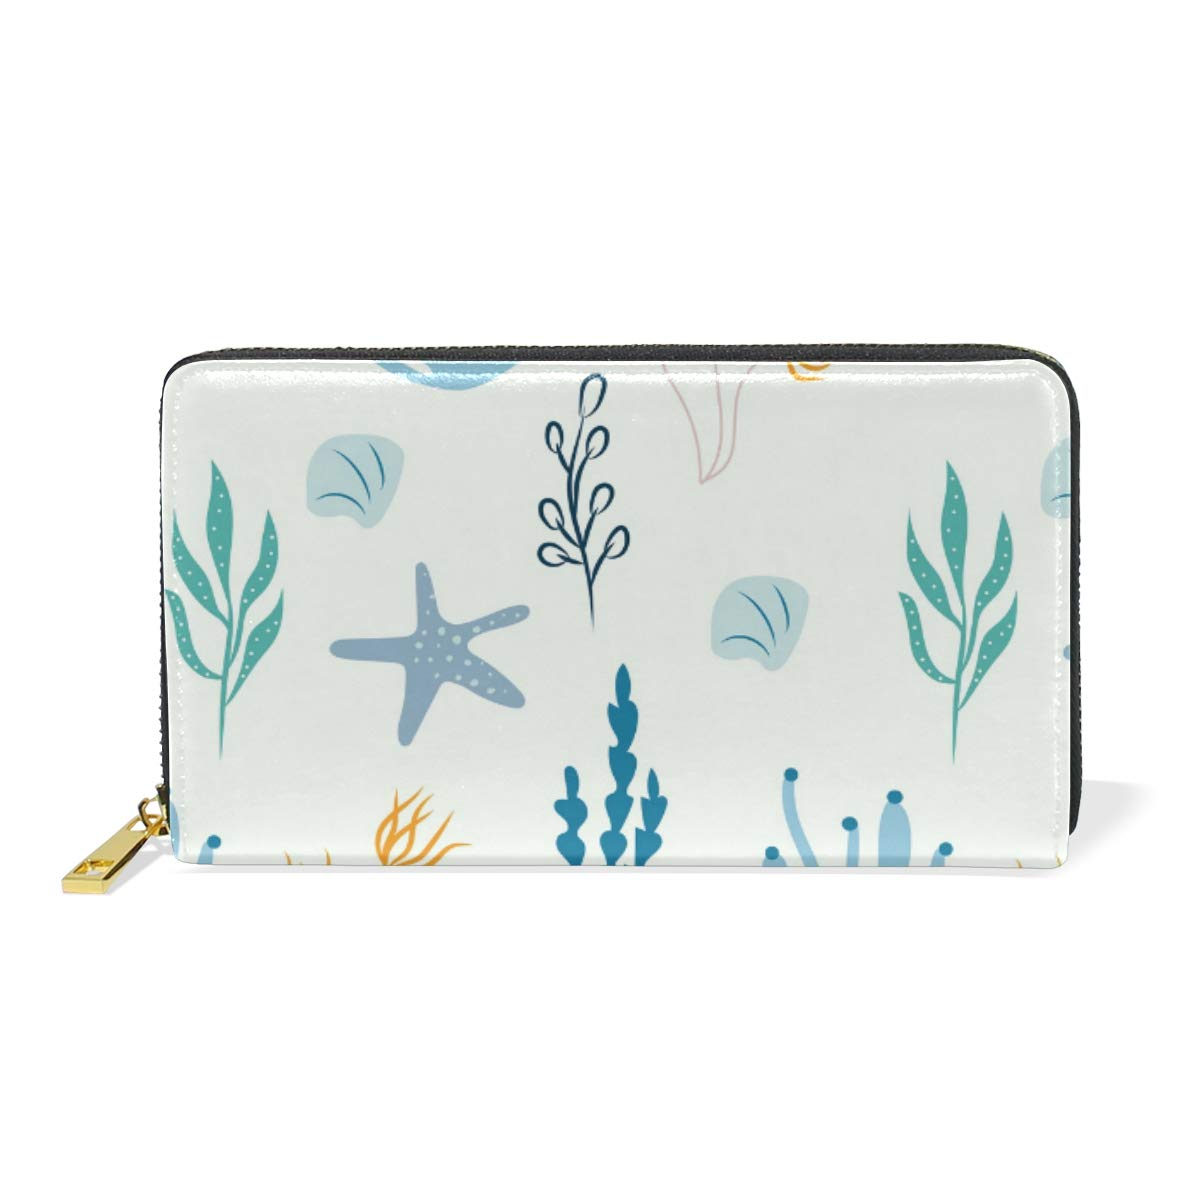 Women Wallet Female Coin Purse Phone Clutch Pouch Girl Cash Bag Leather Card Change Holder Organizer Storage Key Hold Elegant Handbag For Party Birthday Gift Coral Sea Animals